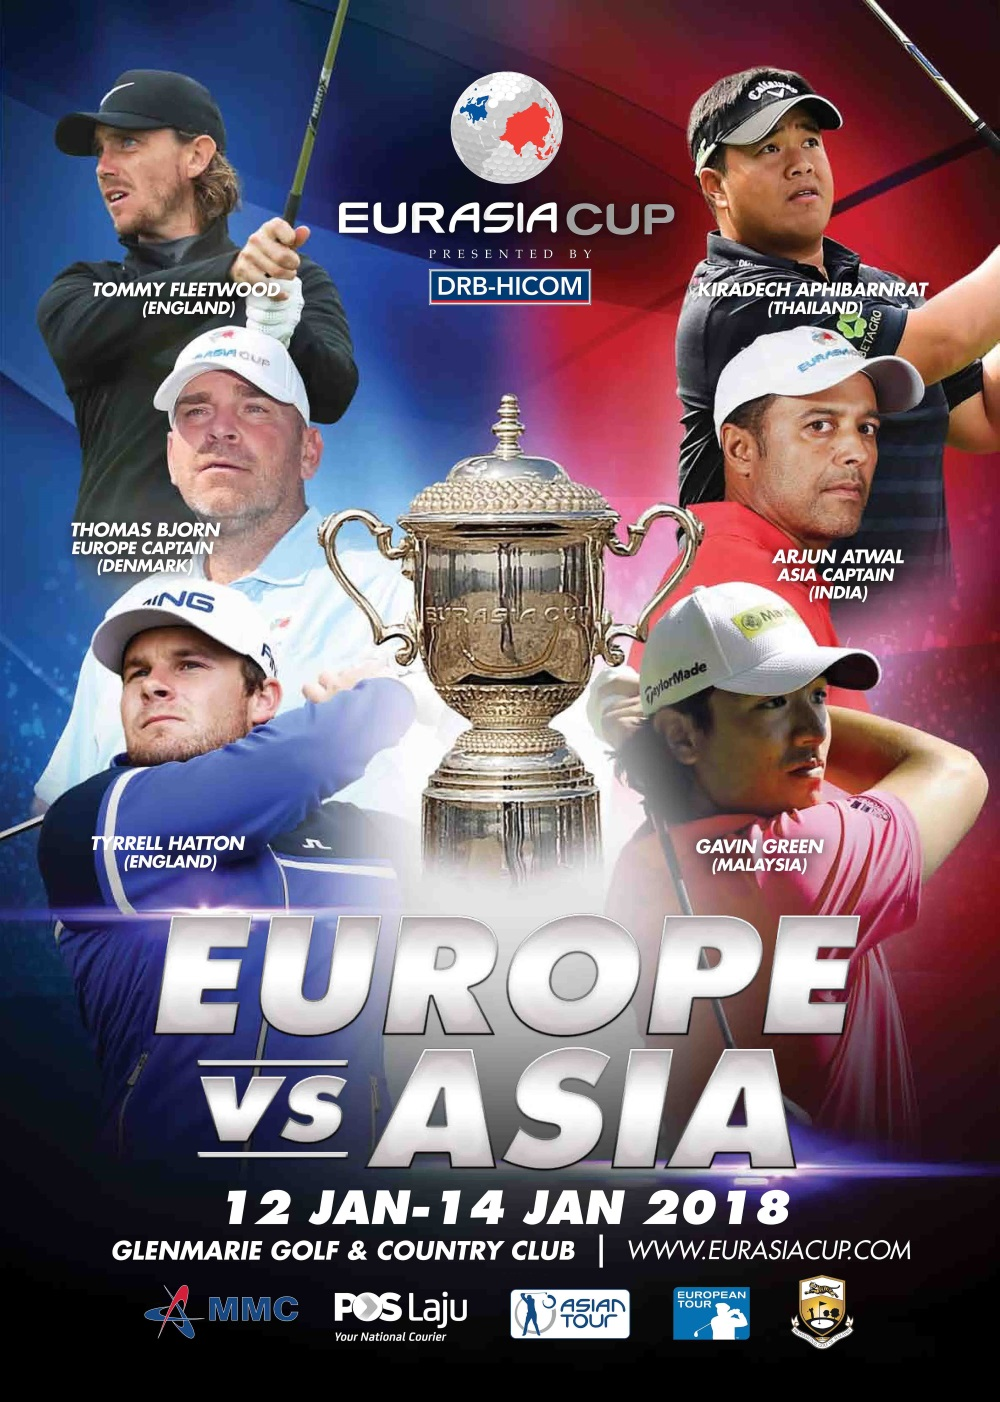 Eurasia Cup 2018 (5 Days 4 Nights 3 Golf Rounds)